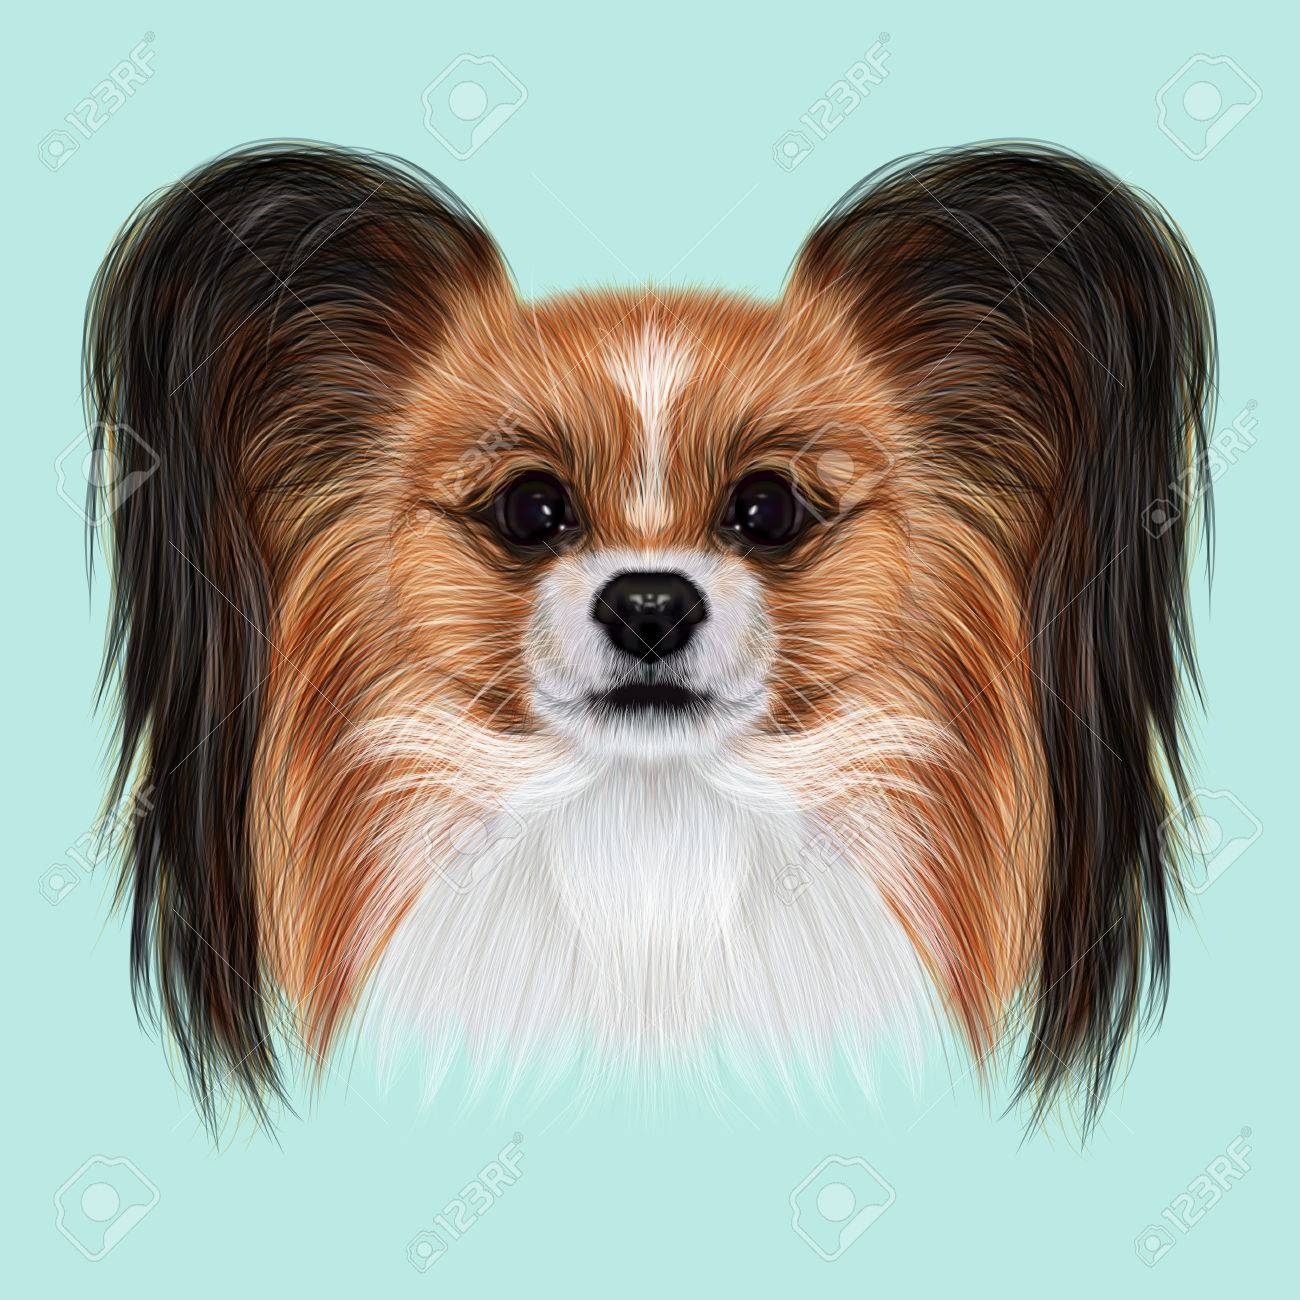 illustrated portrait of papillon dog cute fluffy face of